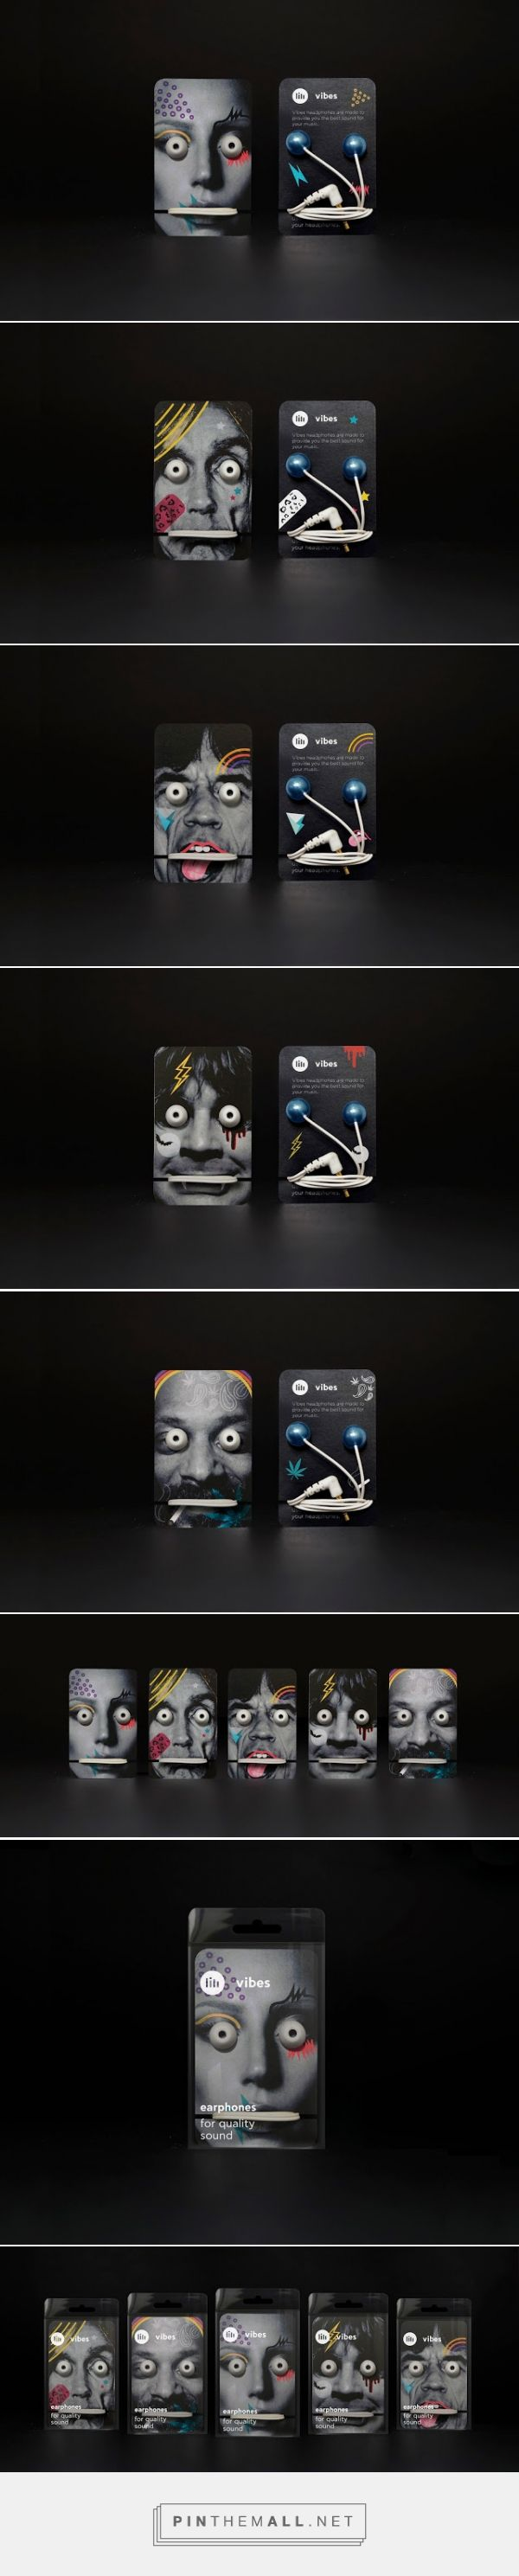 ‪‎Ozzy‬ ‪Gaga‬ ‪‎Snoop dogg‬? Can you identify them all? ‪Earphones‬ ‪‎packaging‬ ‪concept‬ designed by Adamantia Chatzivasileiou (‪Greece‬) - http://www.packagingoftheworld.com/2016/02/vibes-earphones-concept.html